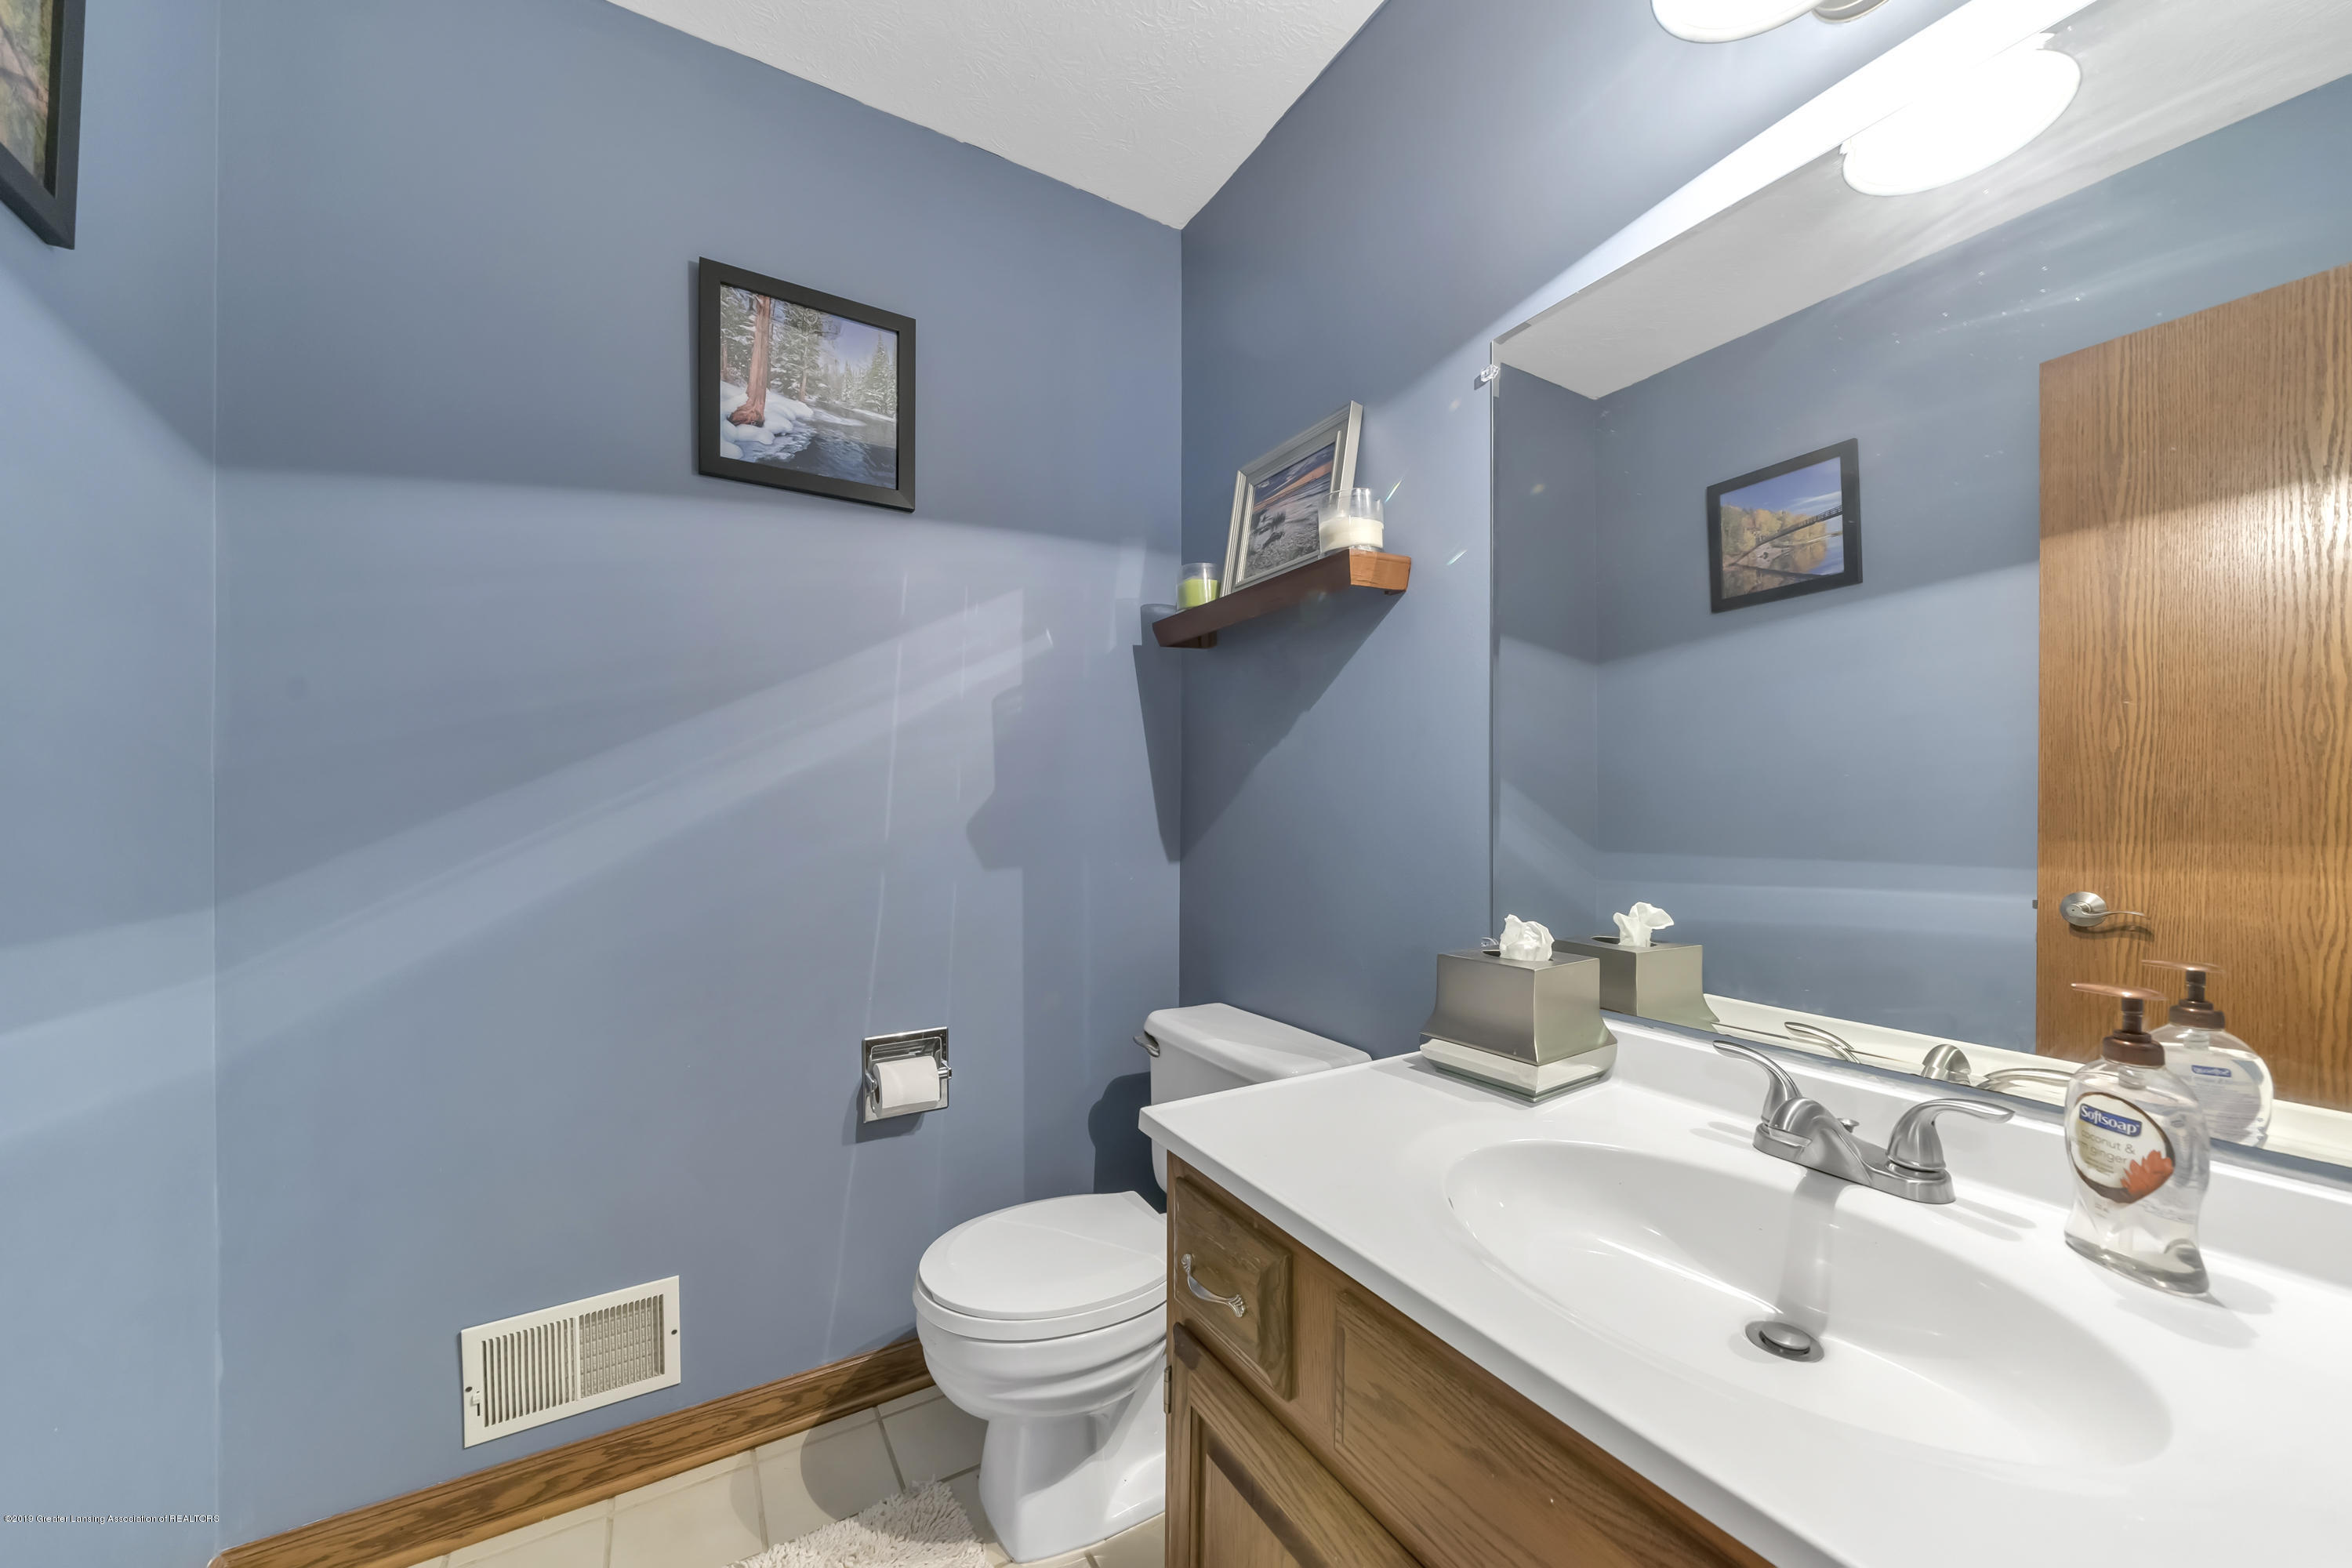 2282 Moorwood Dr - 2282-moorwood-Holt-mi-48842-windowstill- - 16